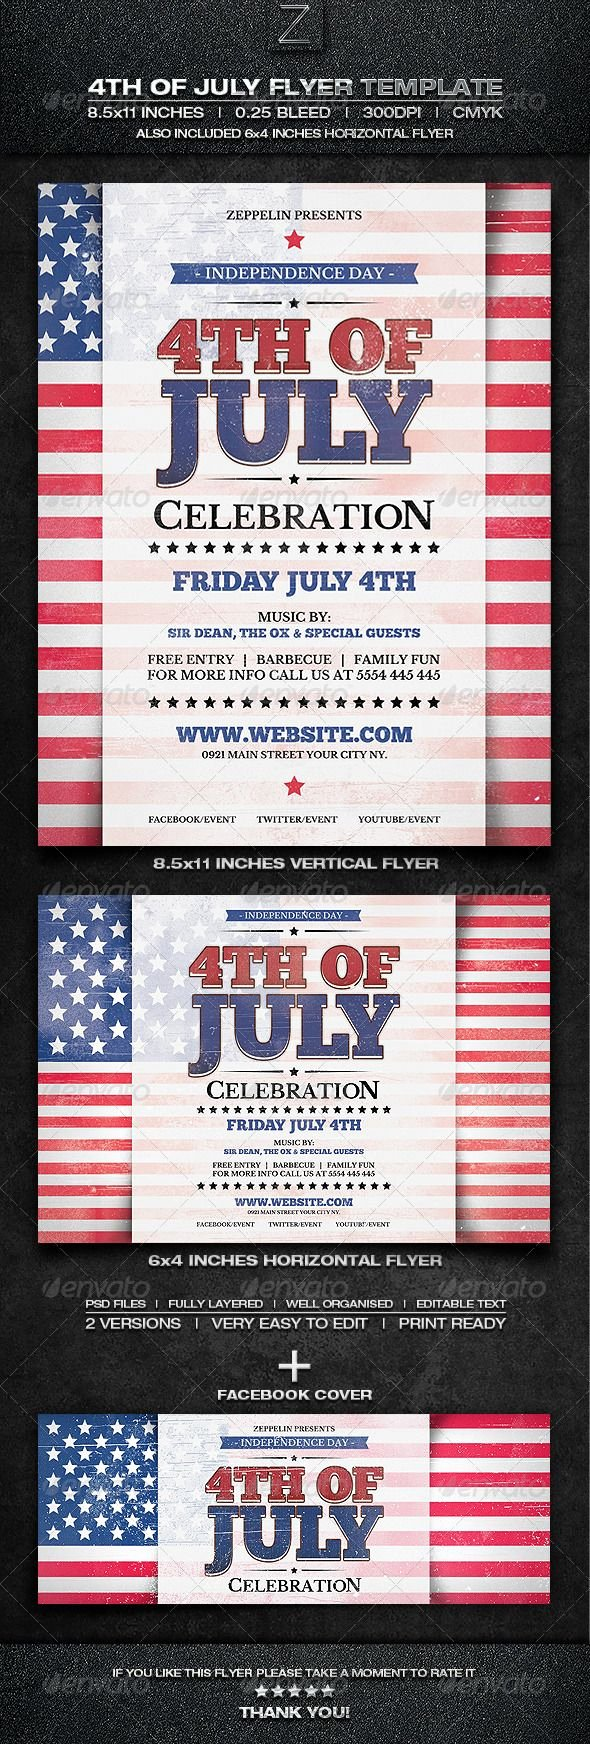 Fourth Of July Flyer Template New 37 Best Images About Flyers On Pinterest